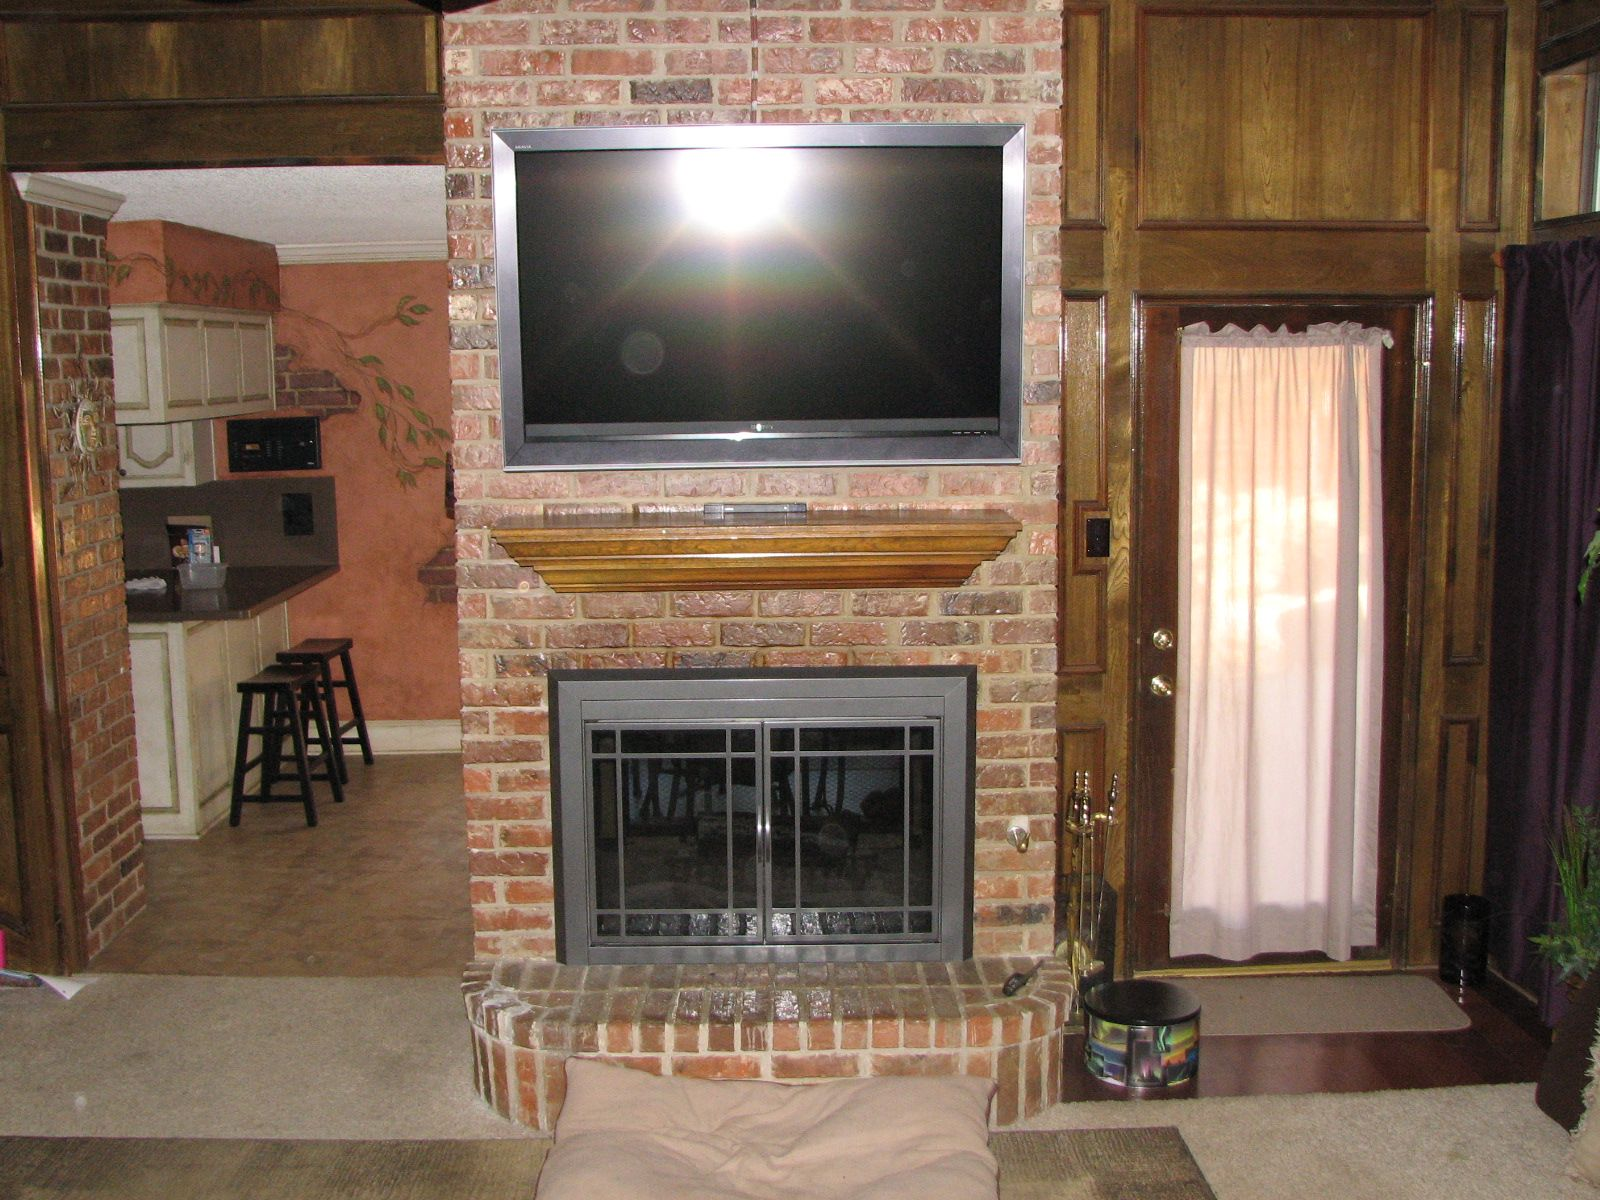 brick fireplaces with tv above tv install installation of tv over rh pinterest com Awesom TV Wall Giant Plasma Screen TV On Wall